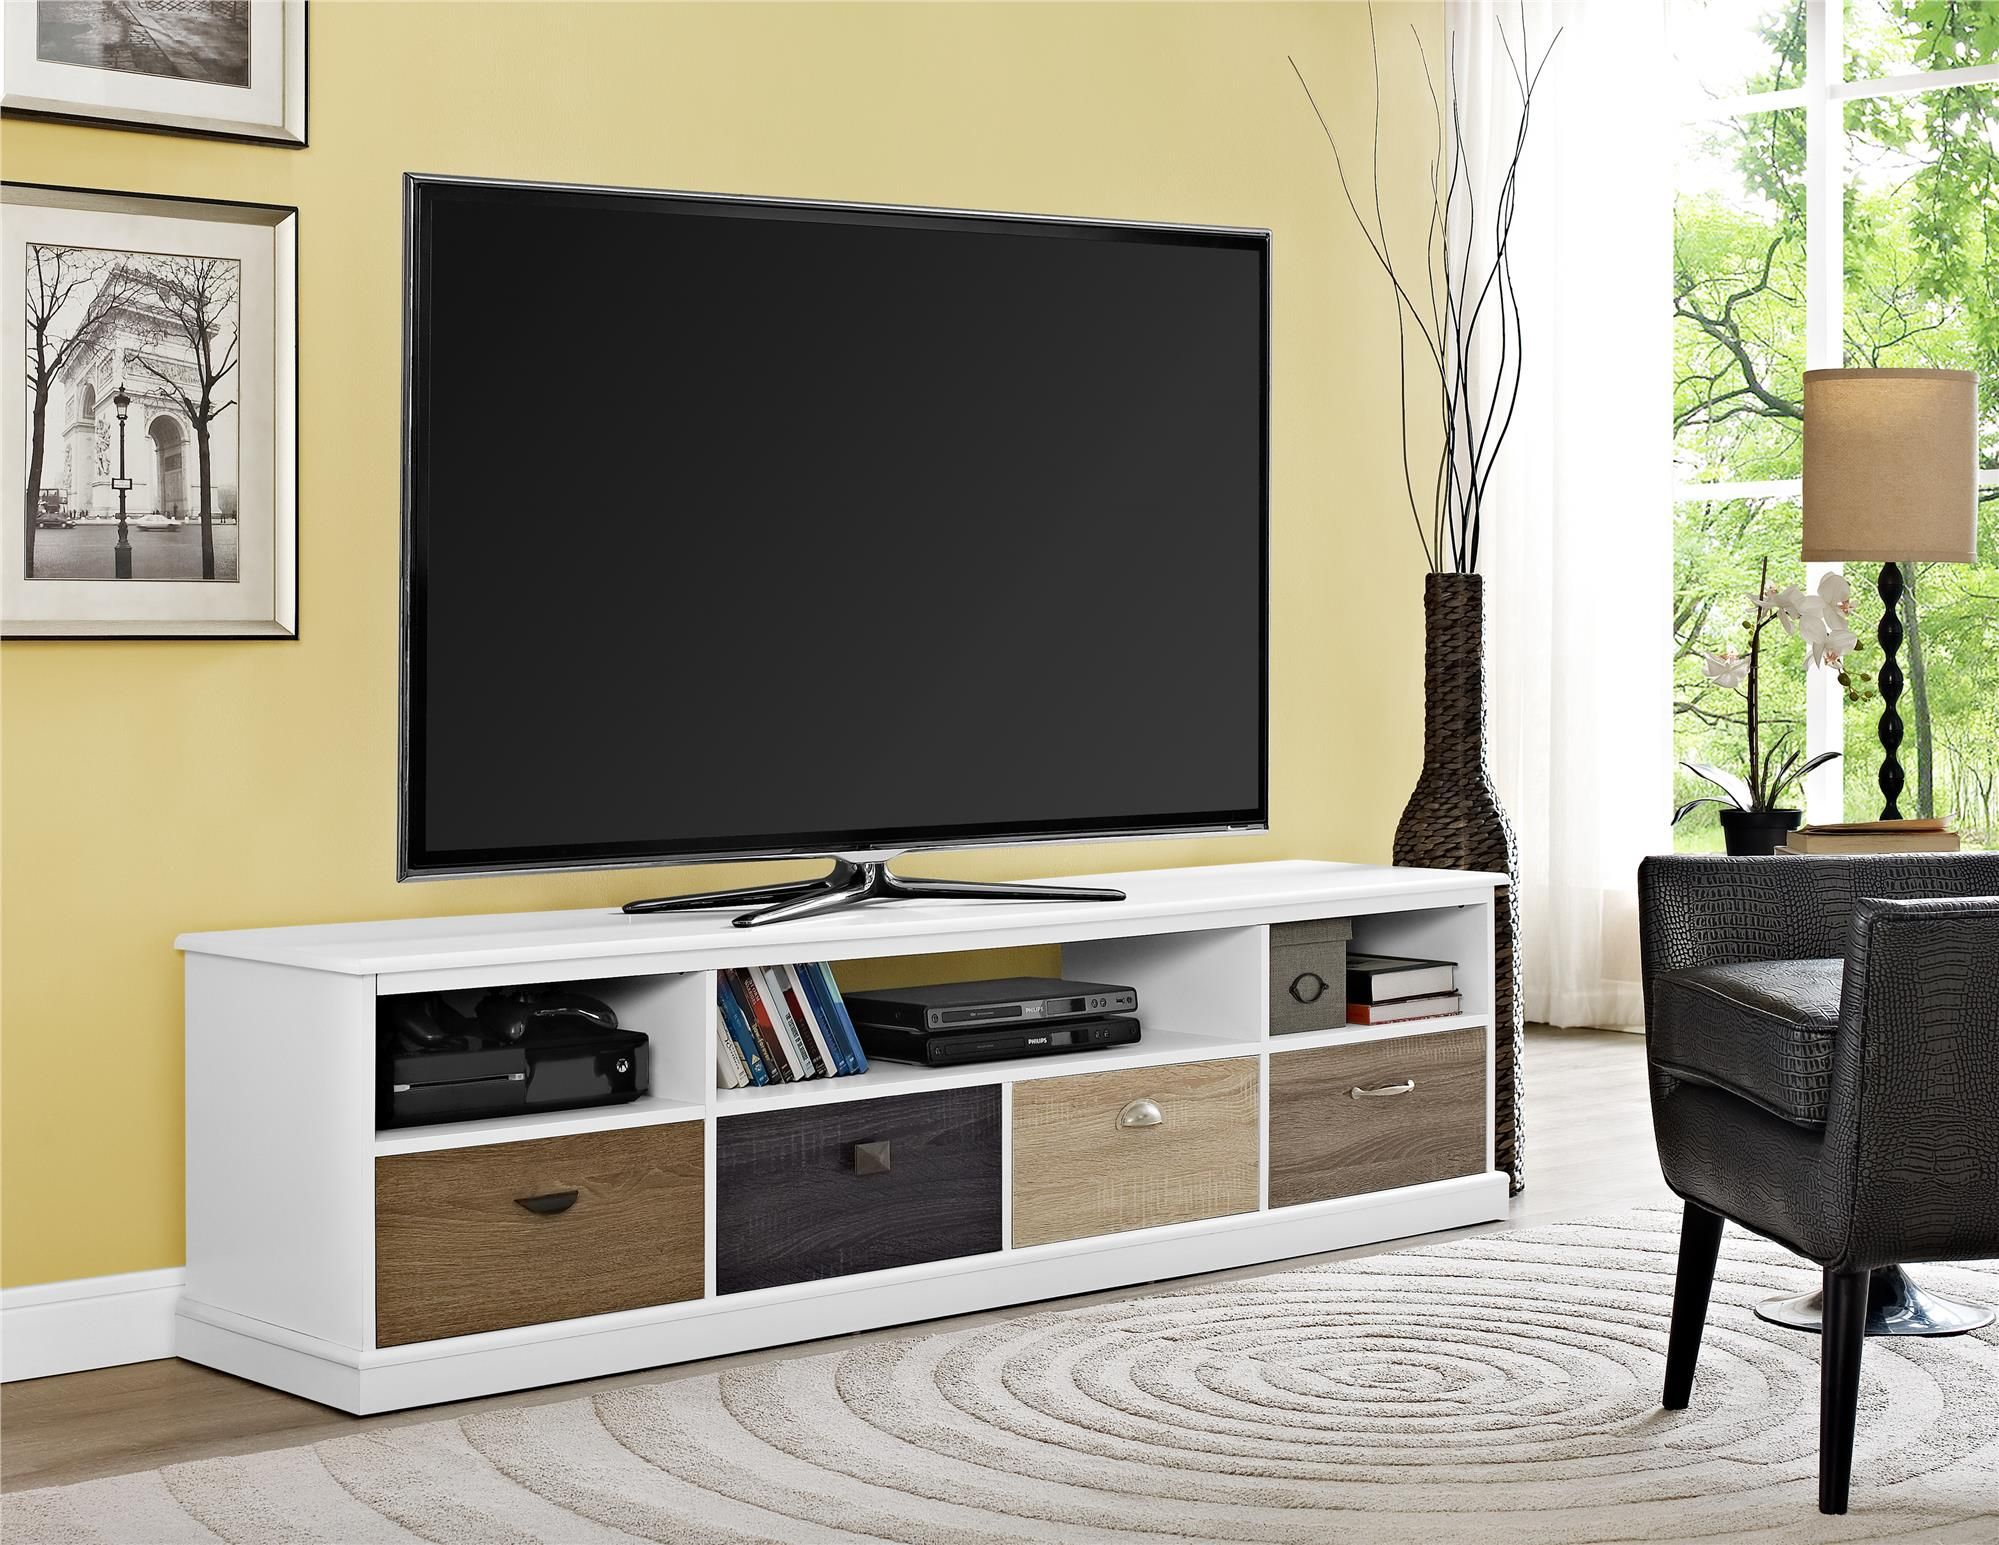 Spruce Up Your Living Room With The Altra Mercer 65 Tv Console With Multicolored Drawer Fronts Featuring 4 Drawers That Are Each Finishe Furniture Home Living Furniture